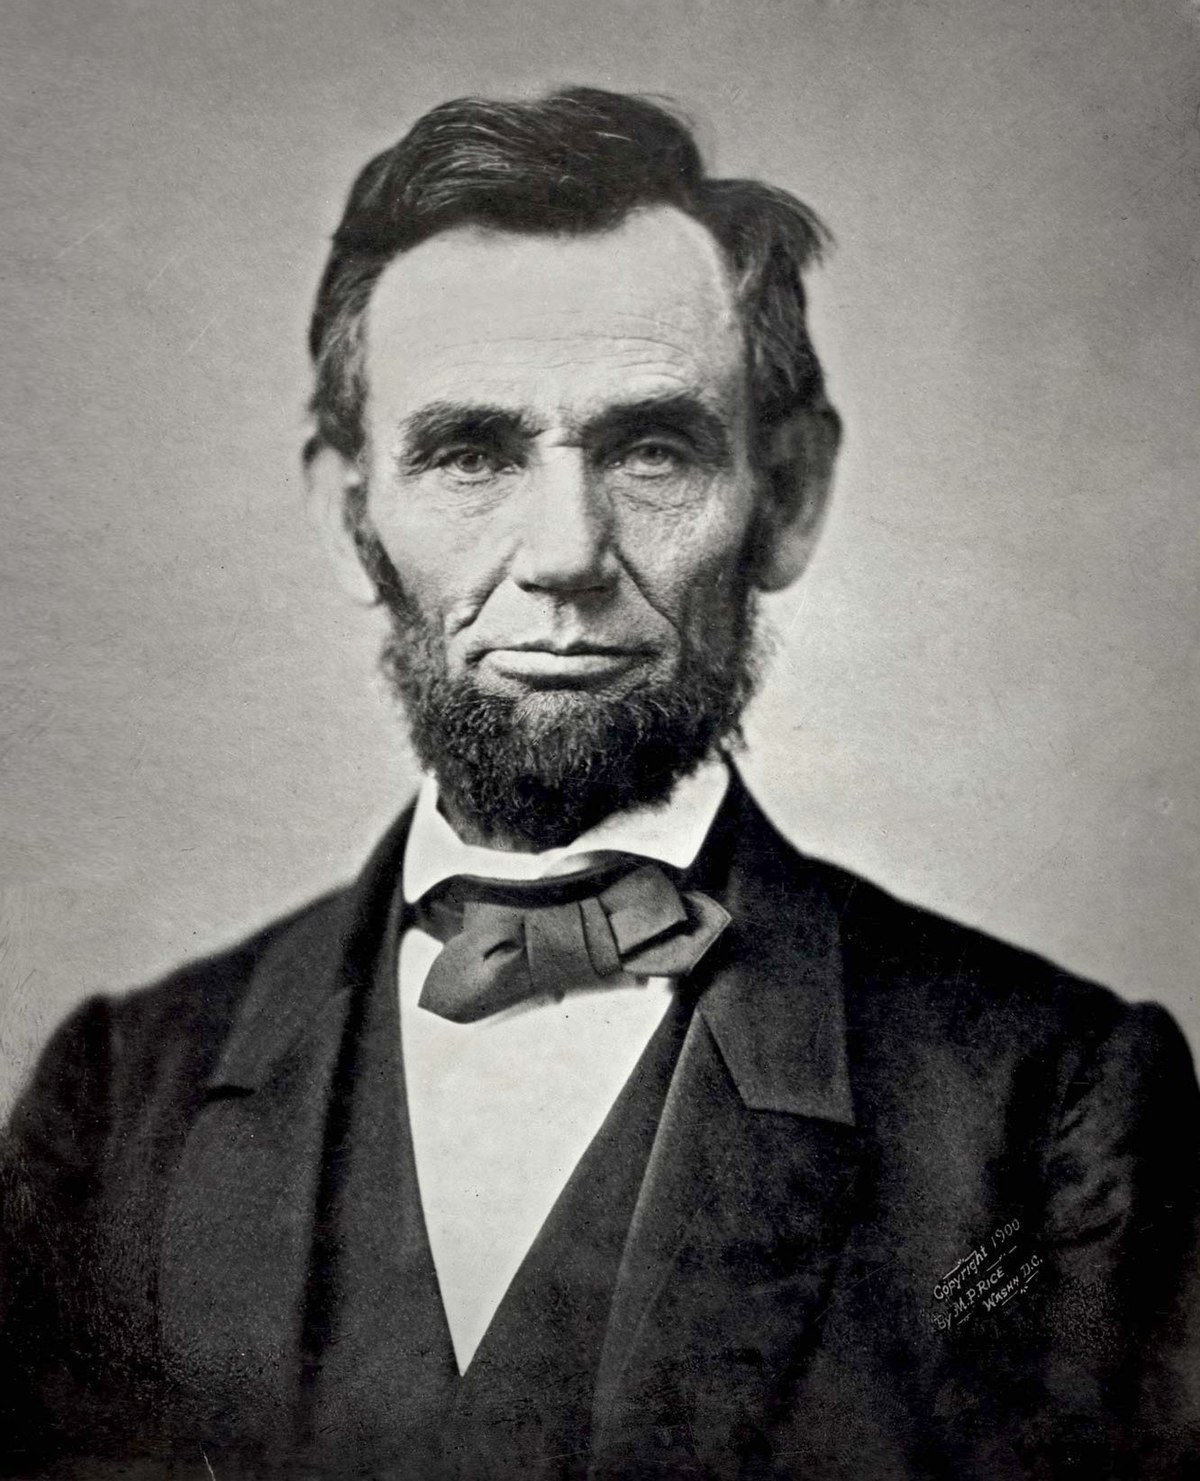 An iconic black and white photograph of a bearded Abraham Lincoln showing his head and shoulders.